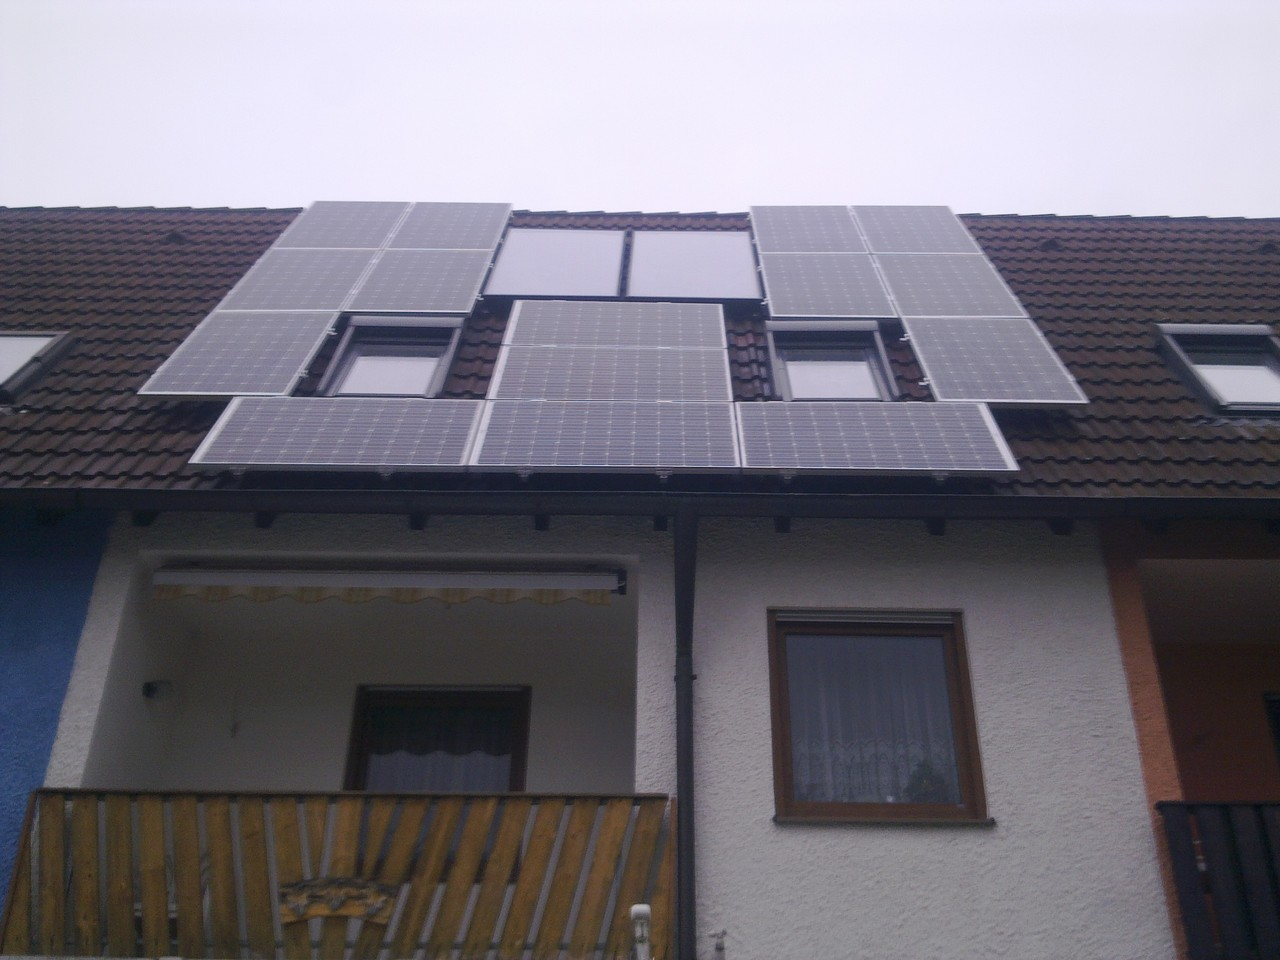 4,05 kWp Photovoltaikanlage in 93073 Neutraubling